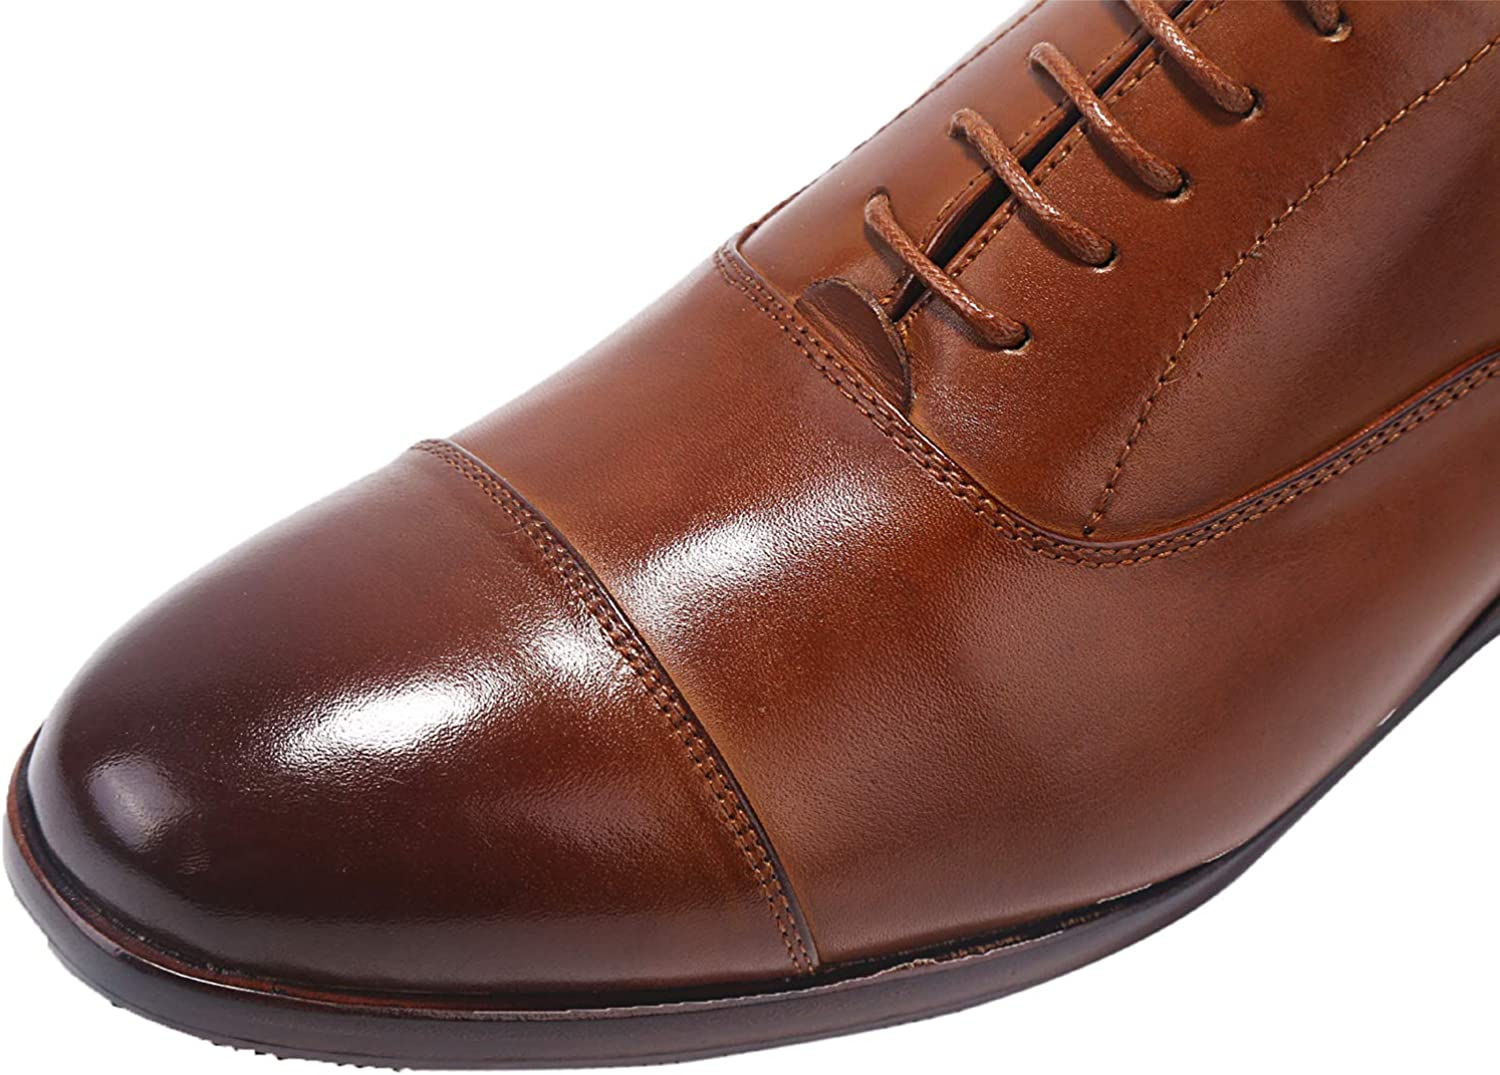 ELANROMAN Mens Oxford Dress Shoes All Genuine Leather Hand Stitched Sole Lace up Blake Shoes